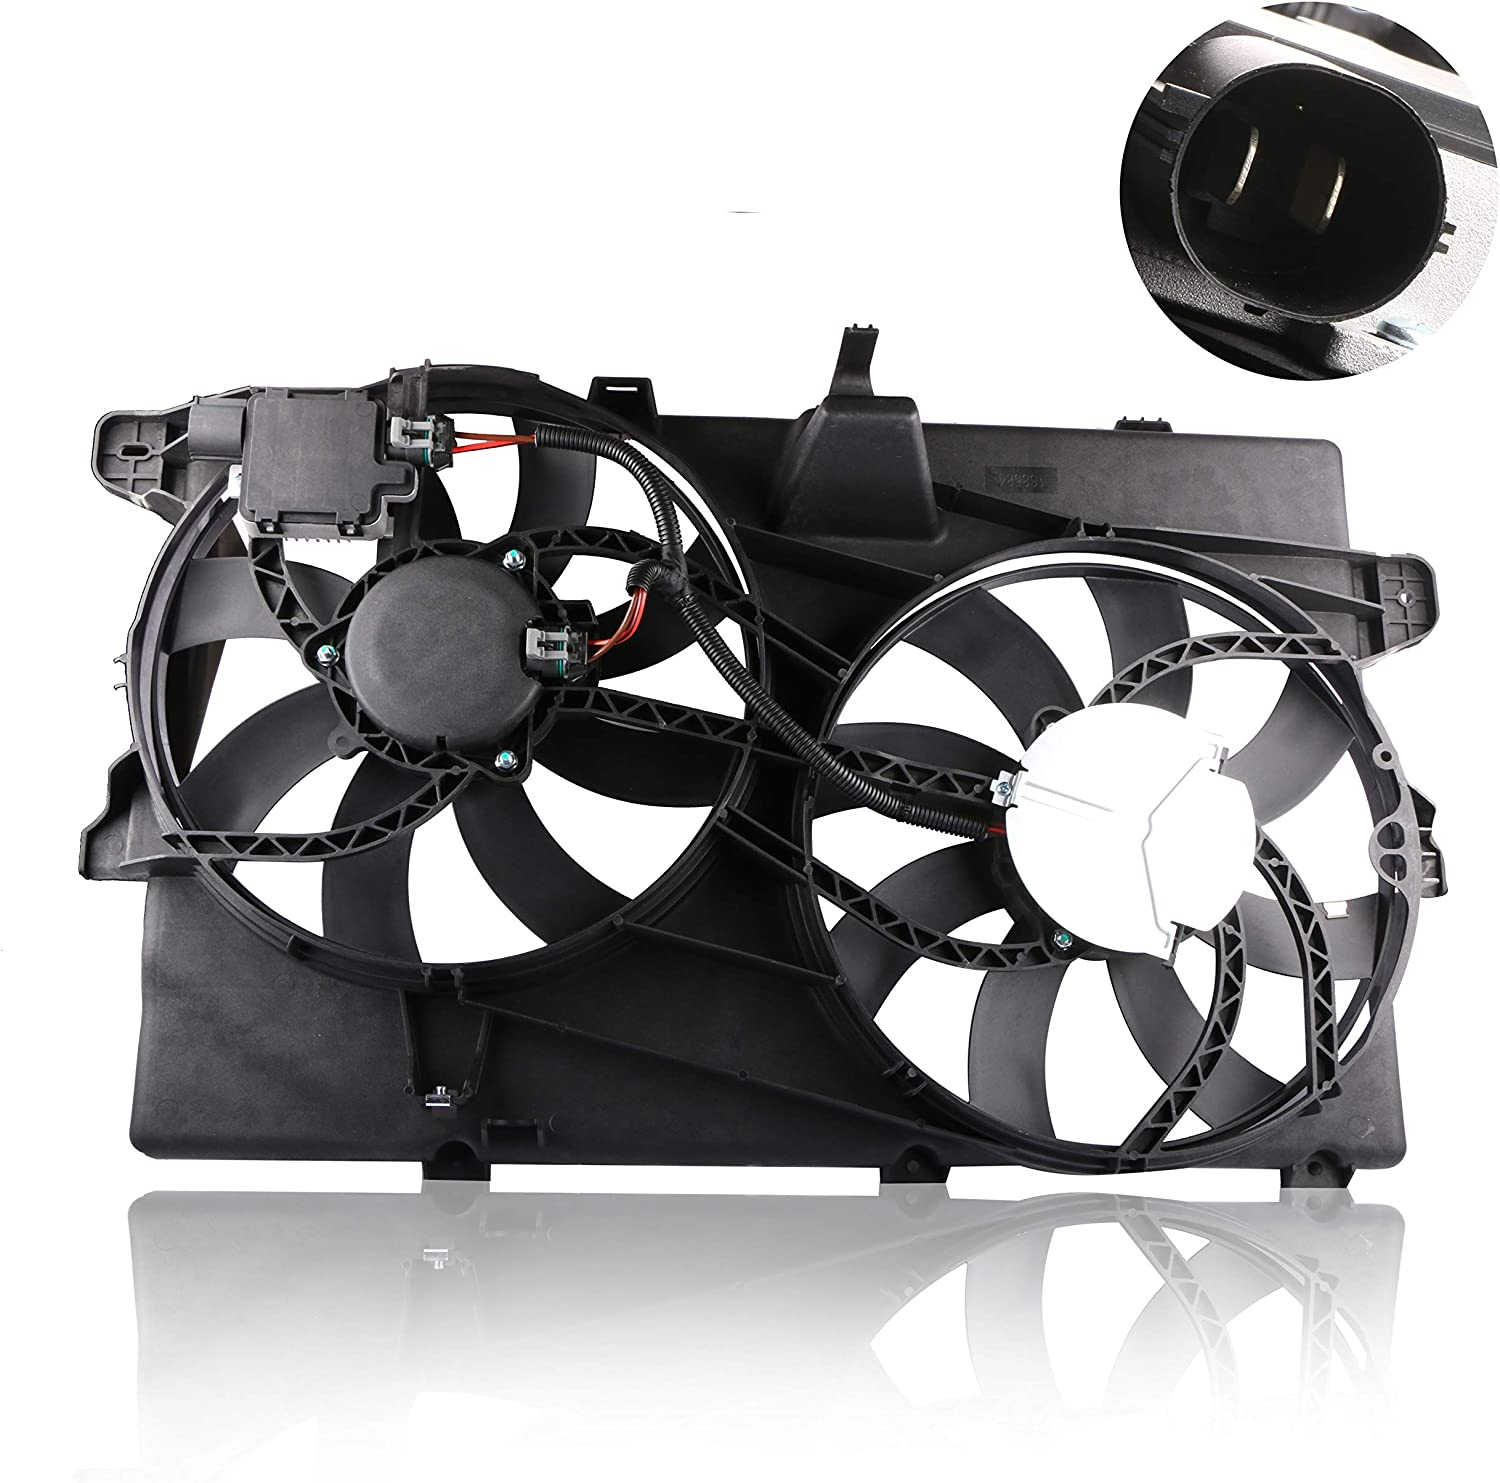 MOSTPLUS Radiator Cooling Fan Assembly for 07-15 Ford Edge Lincoln MKX Replaces 330-55058-000